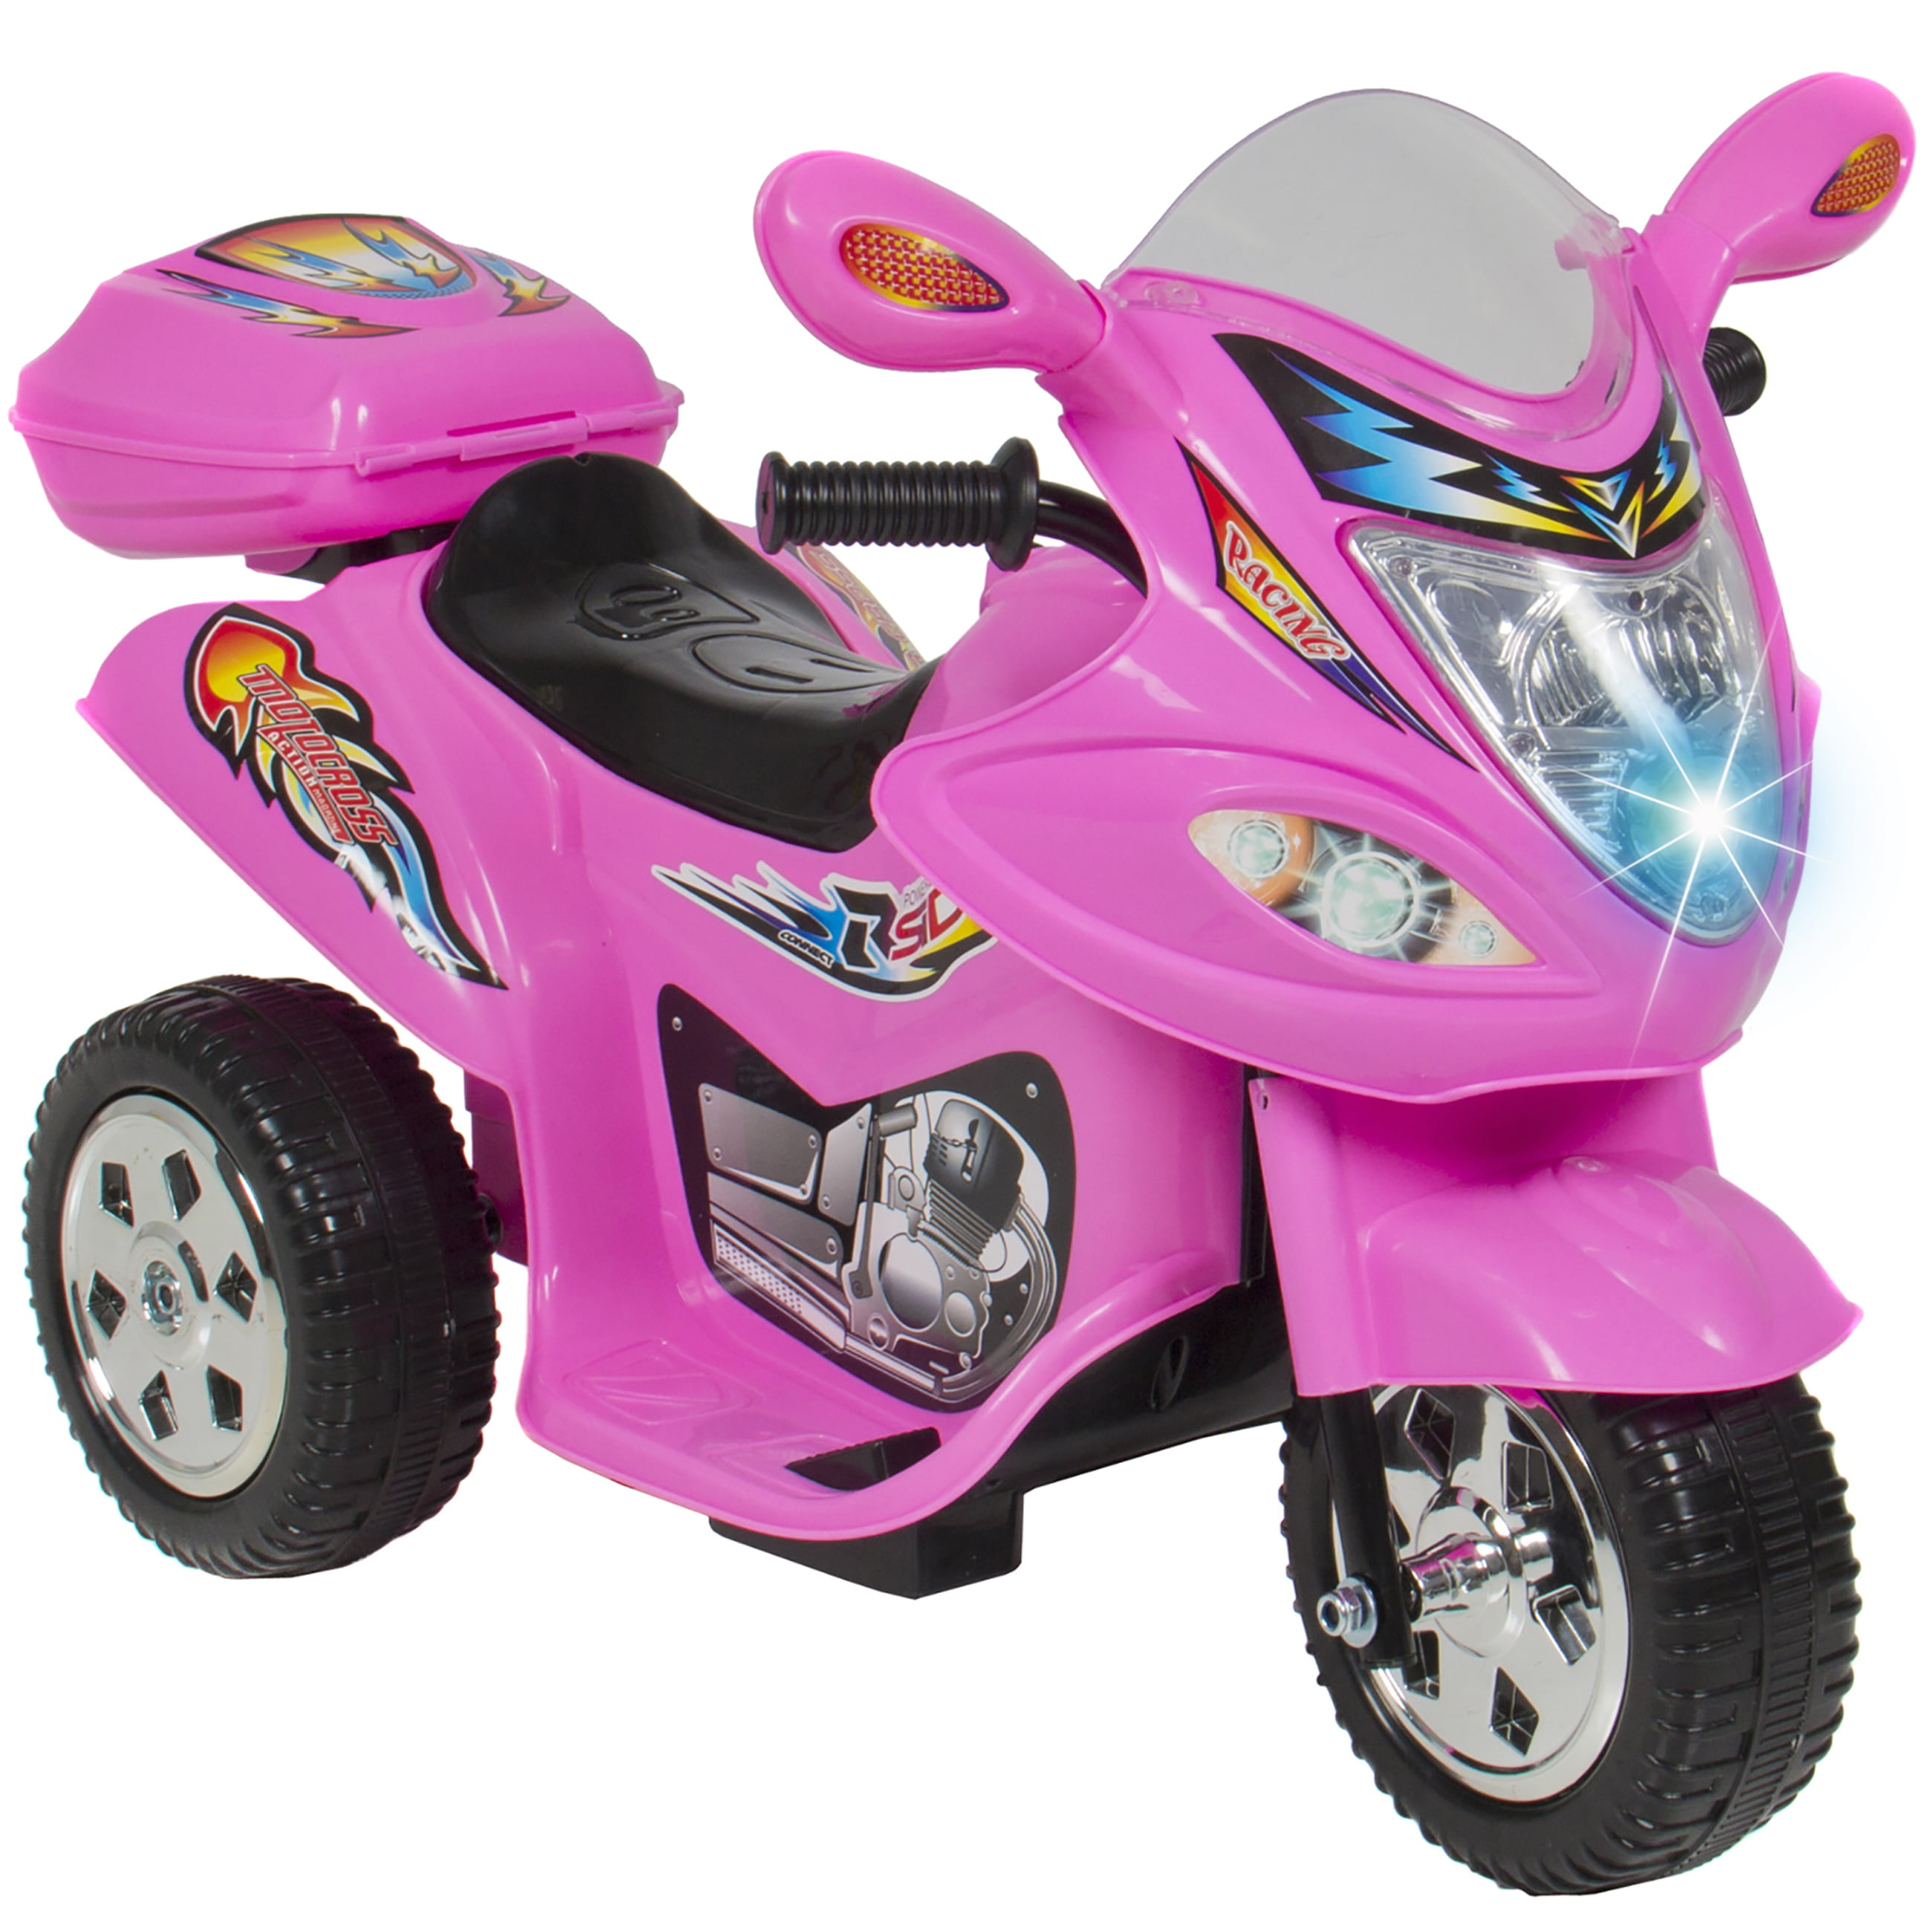 Kids Ride ATV 6V Toy Quad Battery Power Electric 4 Wheel Power